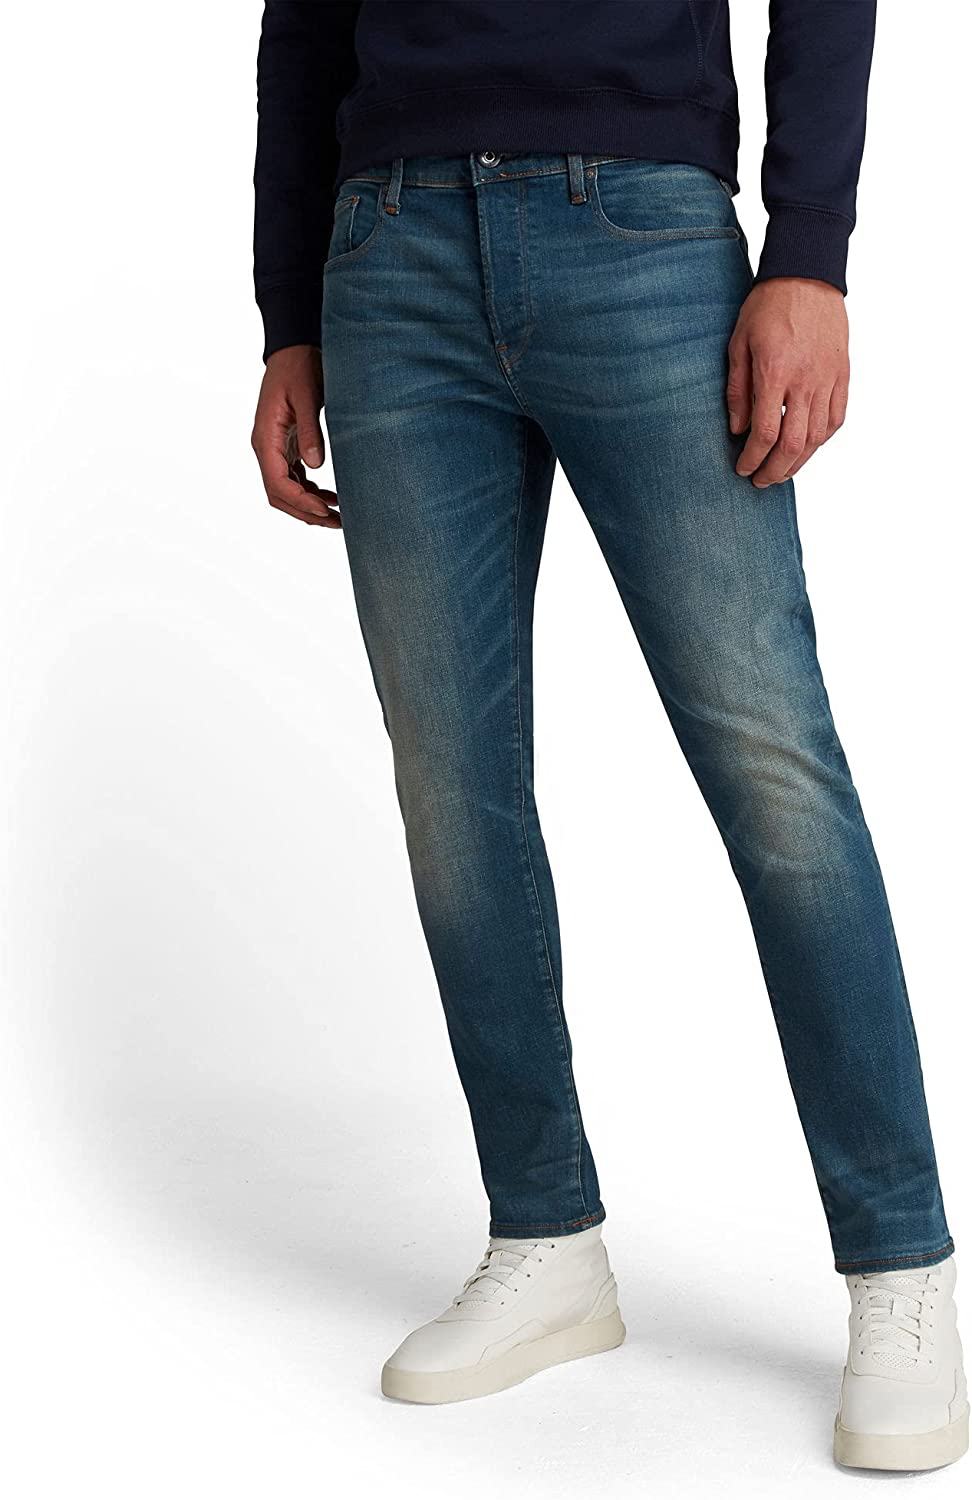 G-Star Men's Max Directly managed store 61% OFF Beln Denim Stretch